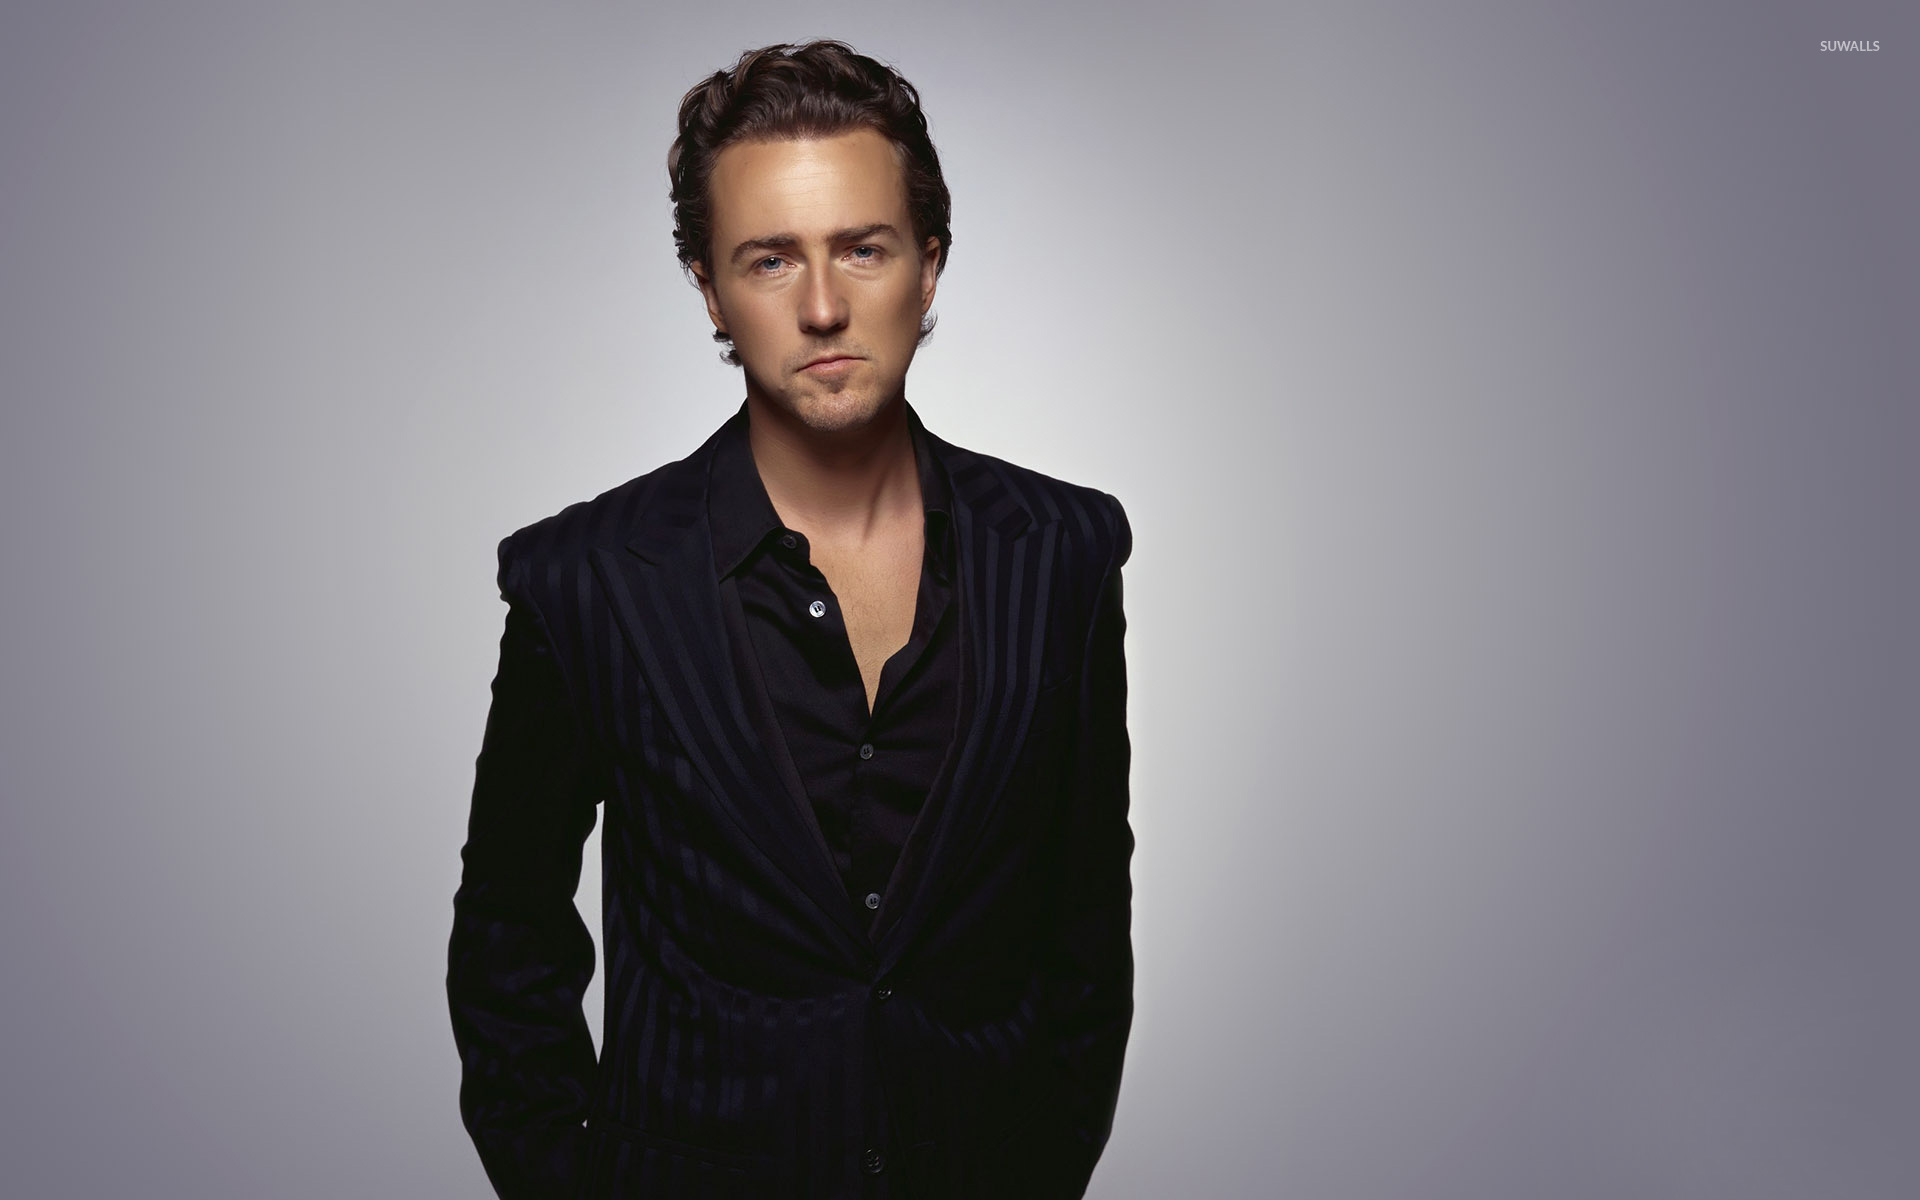 Edward Norton Wallpaper 5   1920 X 1200 stmednet 1920x1200